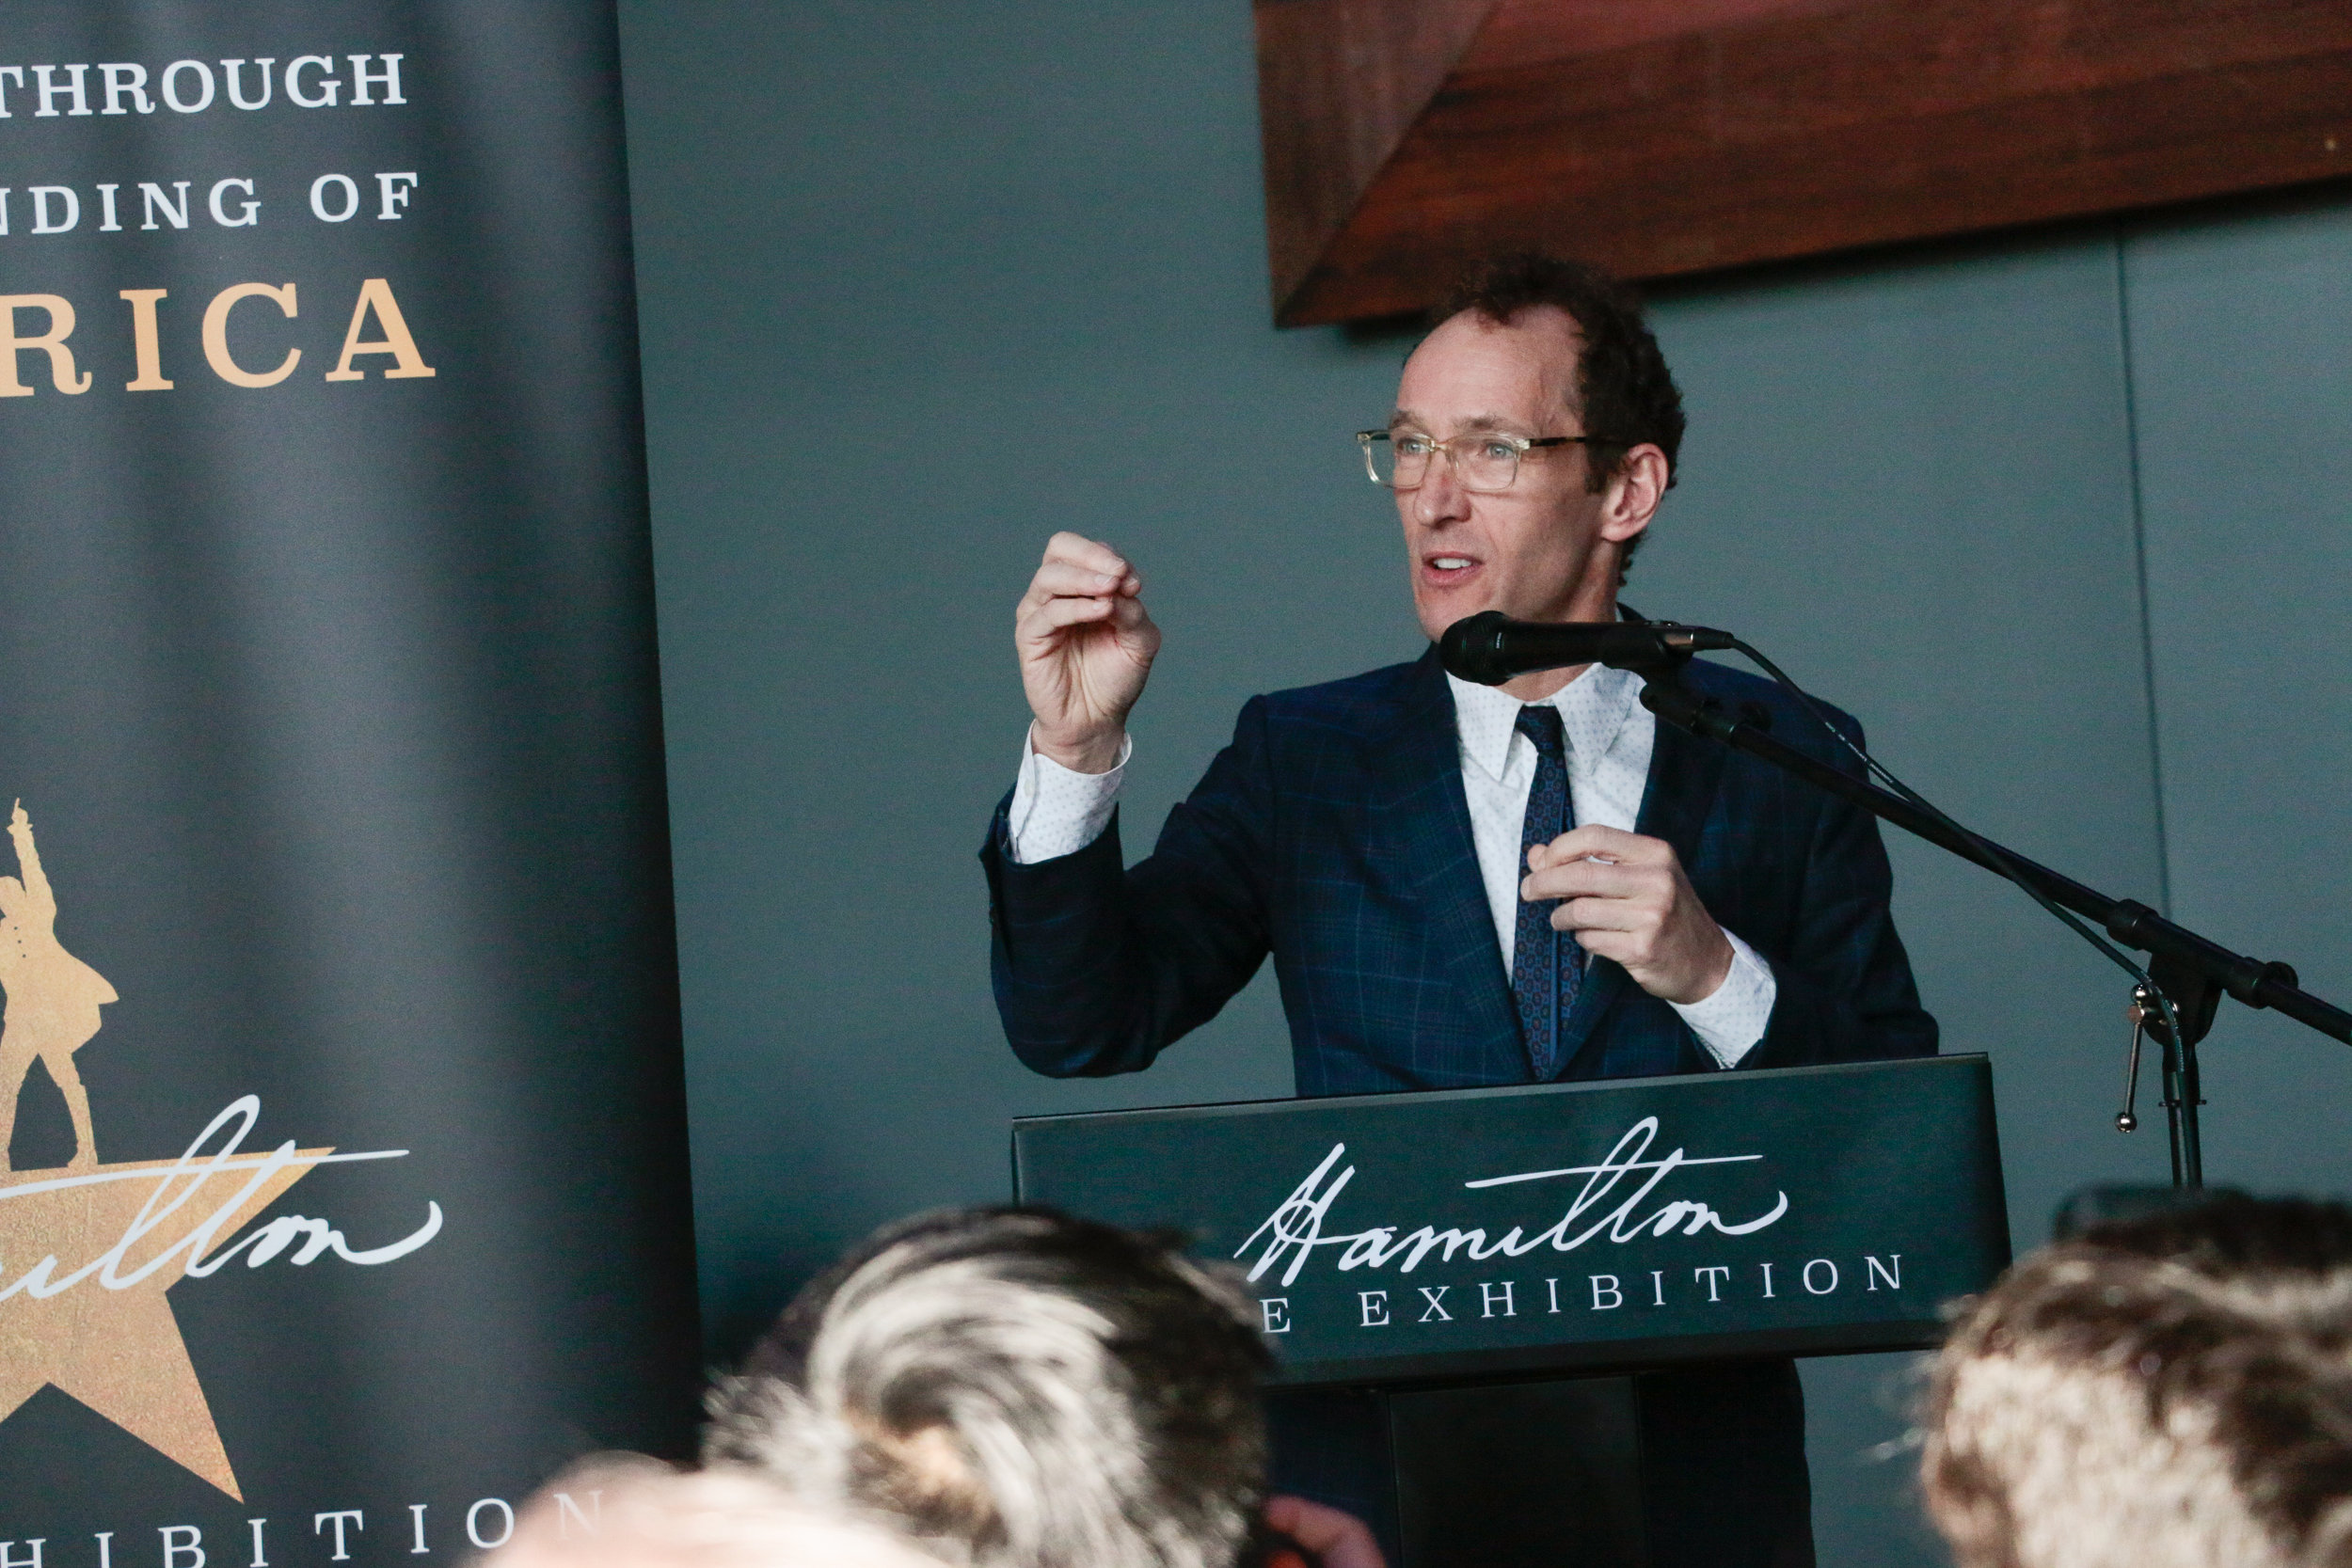 Producer Jeffrey Seller at the Hamilton Exhibition Press Conference and Ribbon Cutting, April 26th, 2019. Photo by Mary Crylen.